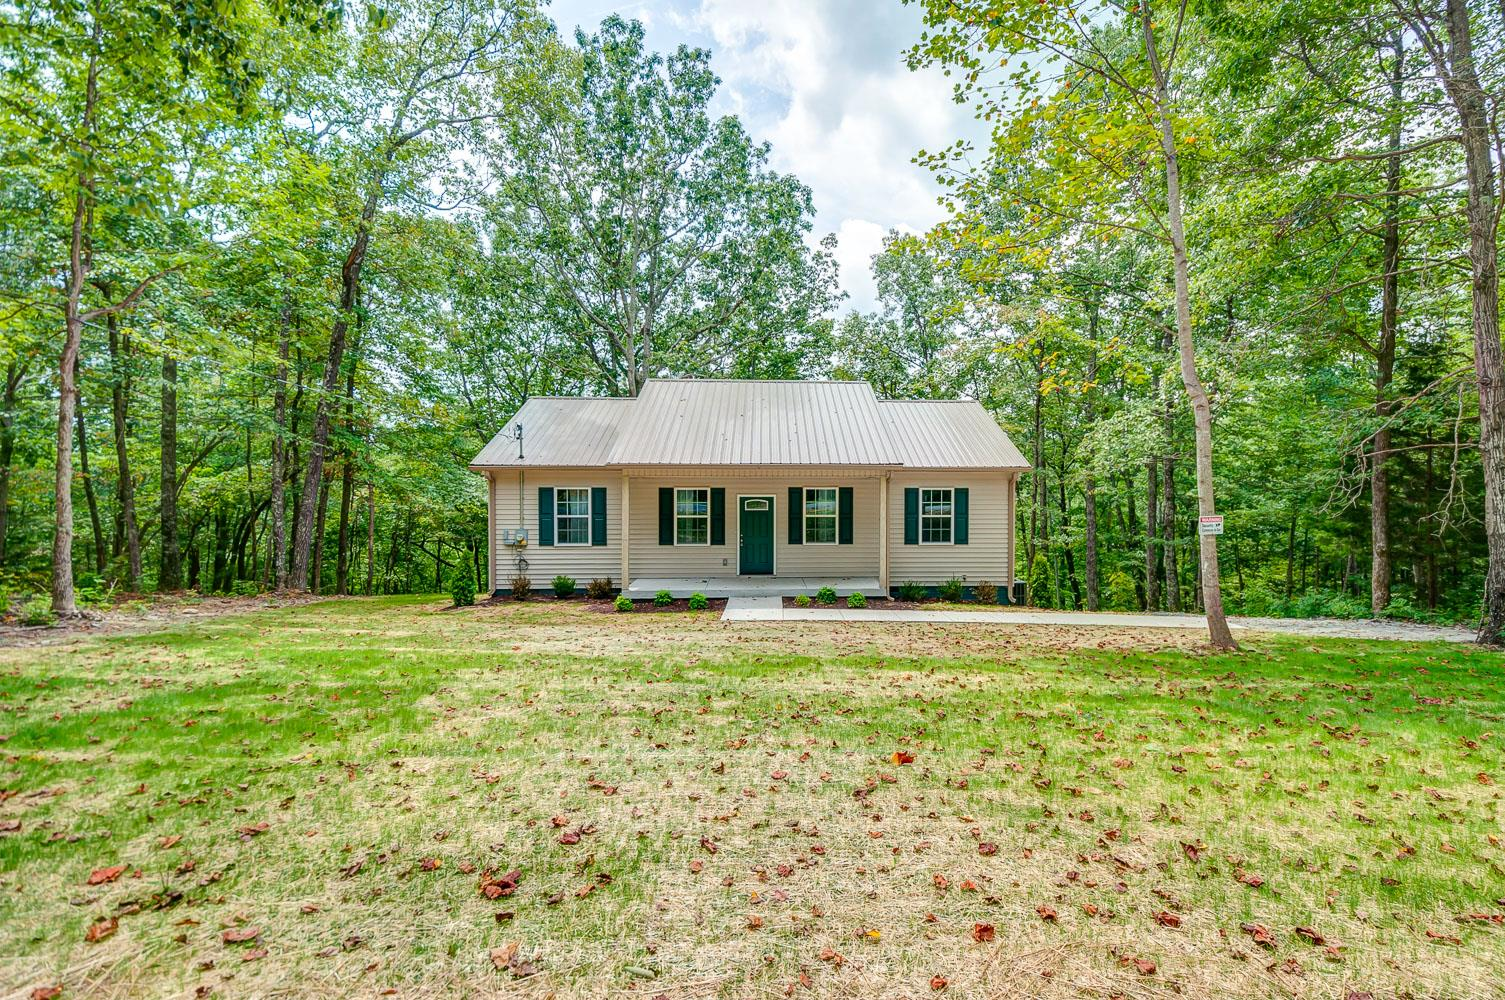 1170 Nora Ln, Pegram, TN 37143 - Pegram, TN real estate listing